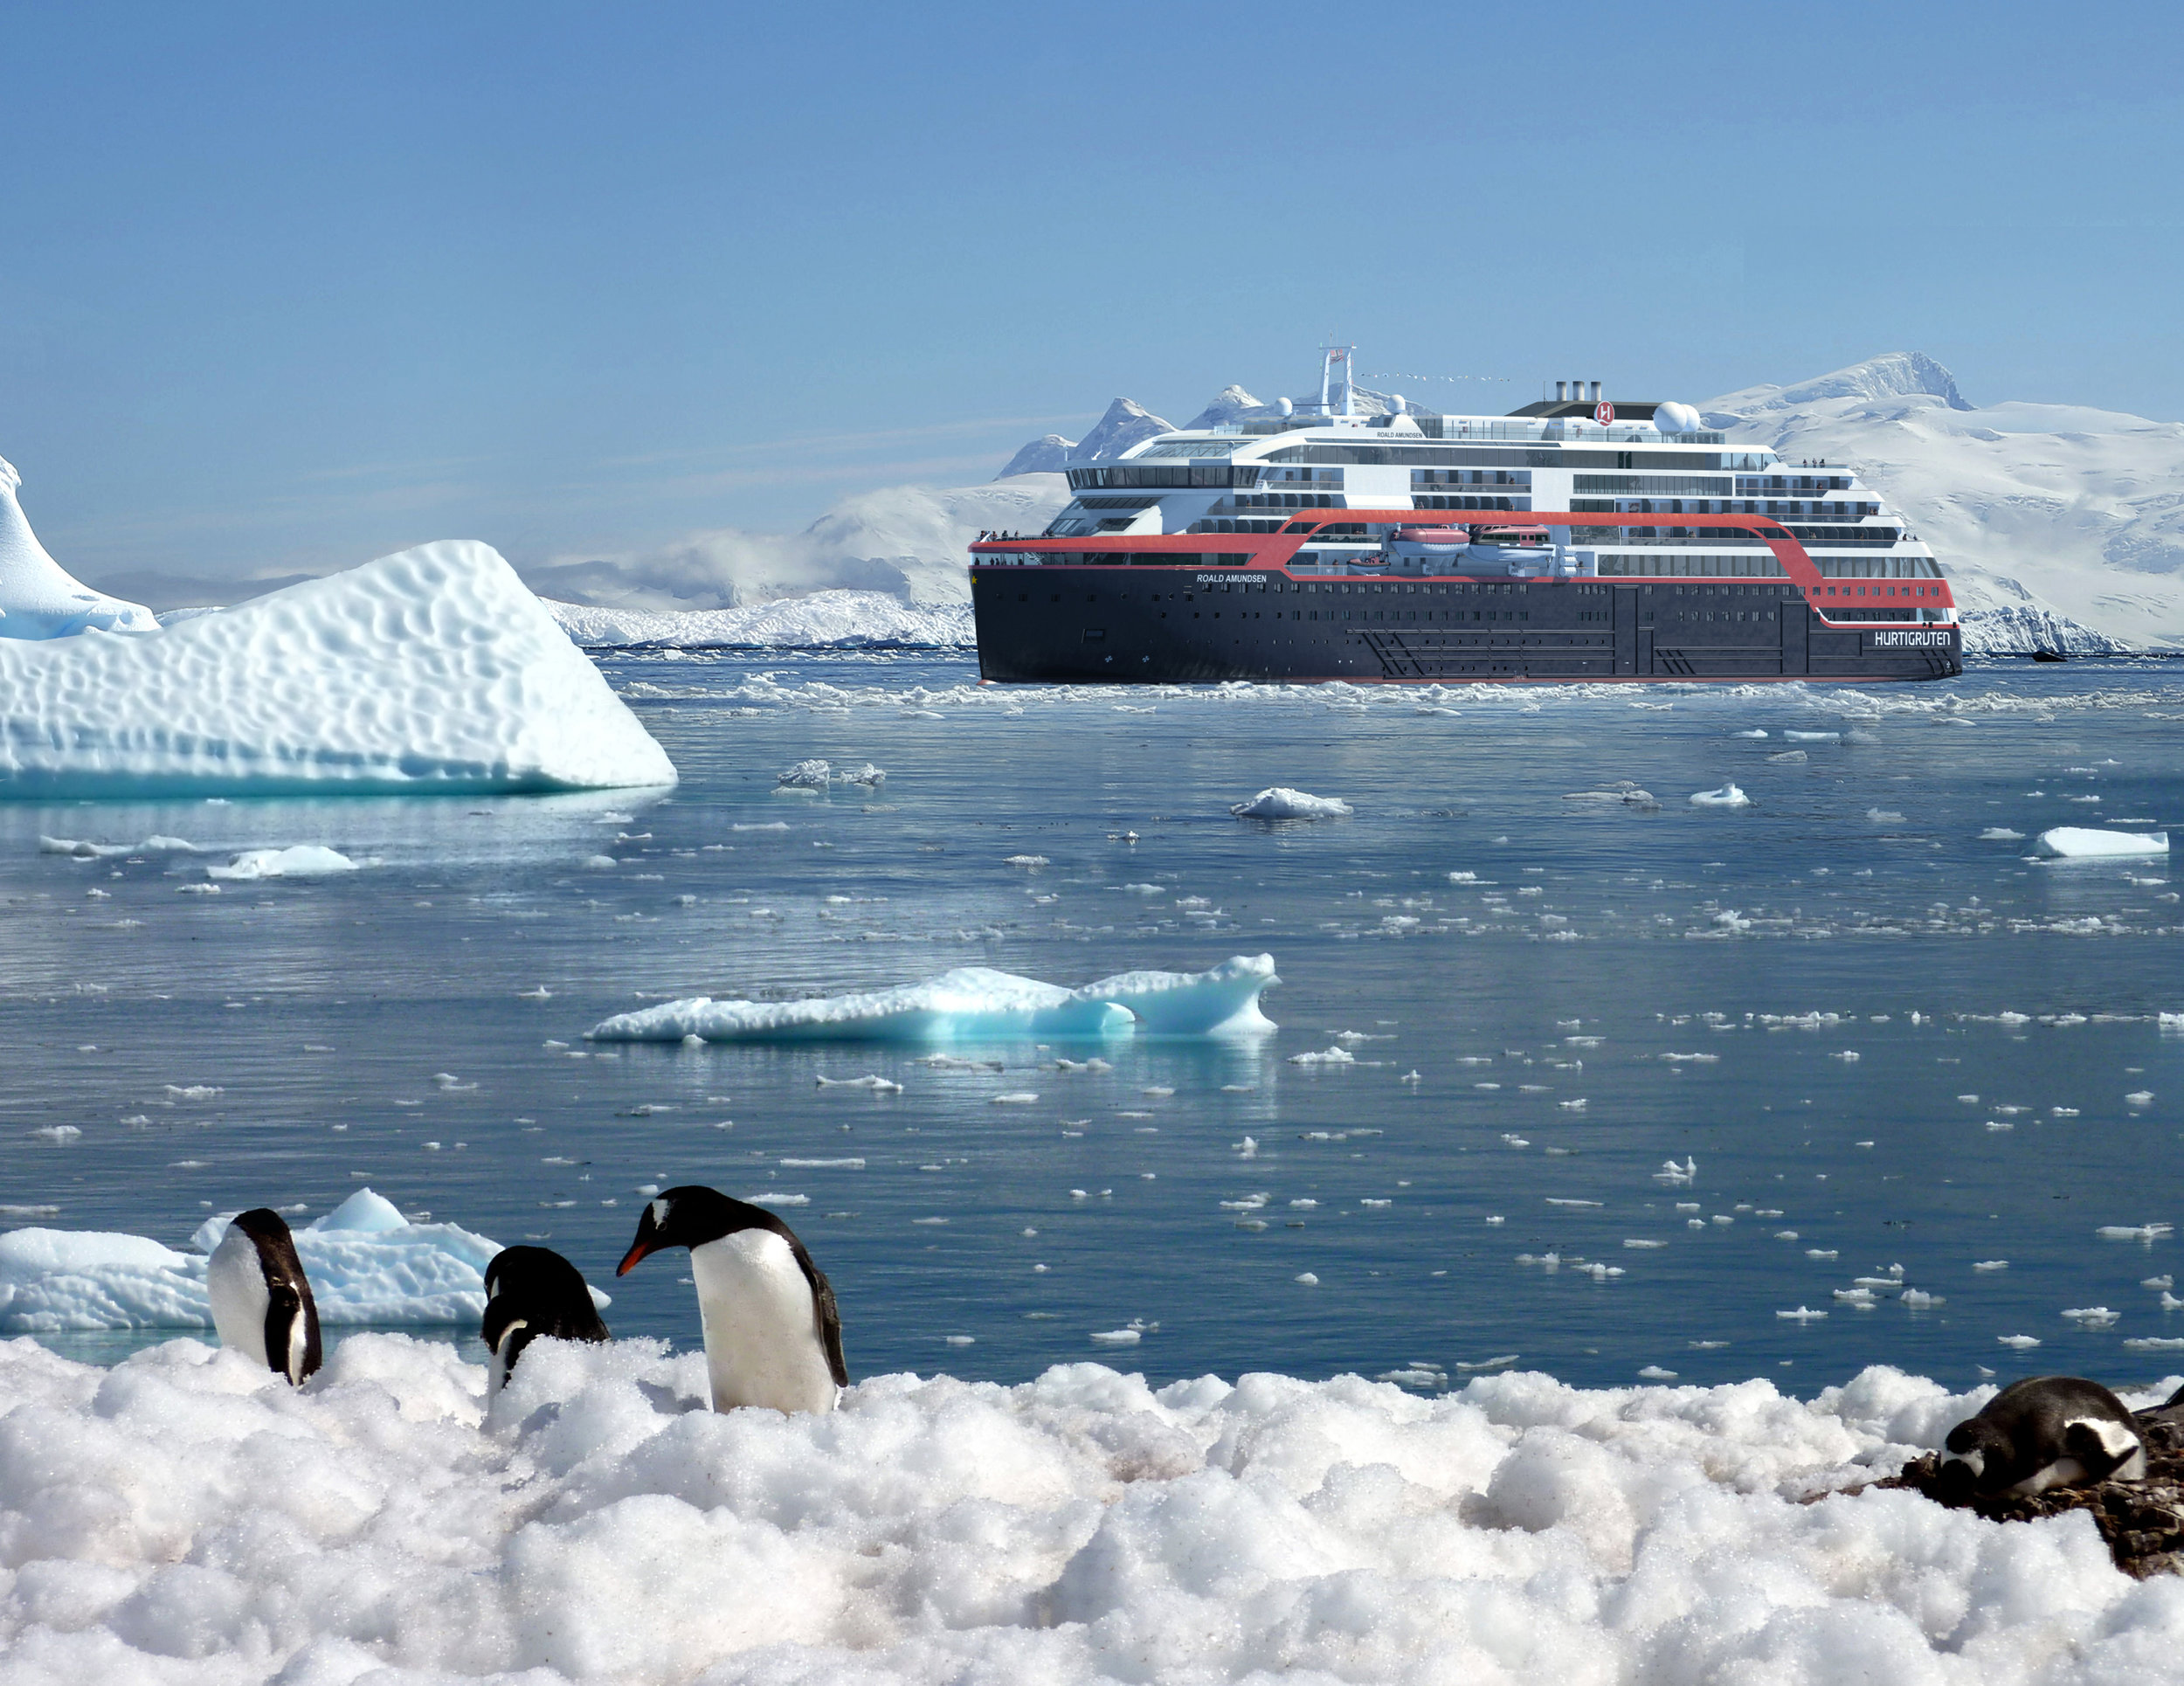 The expedition cruise ship MS Roald Amundsen will be an option in Morild IceNav.